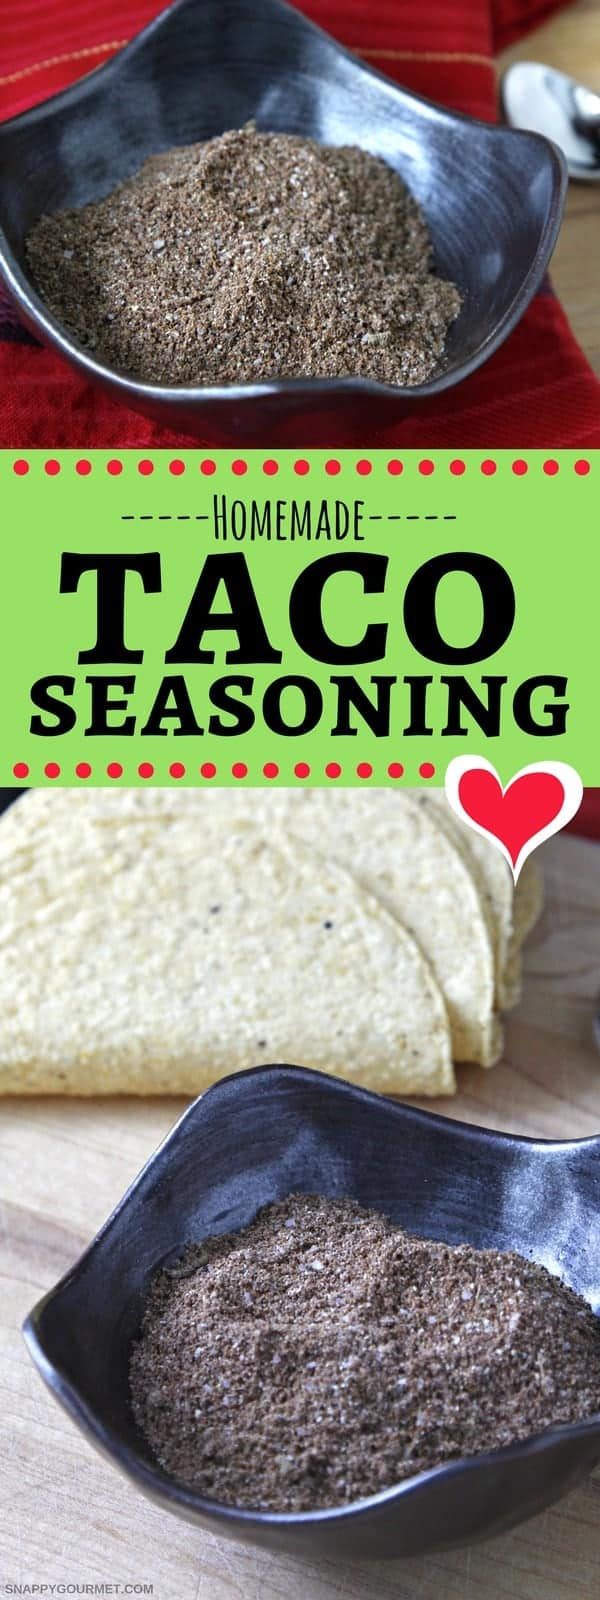 Homemade Taco Seasoning Recipe - DIY taco seasoning to make at home